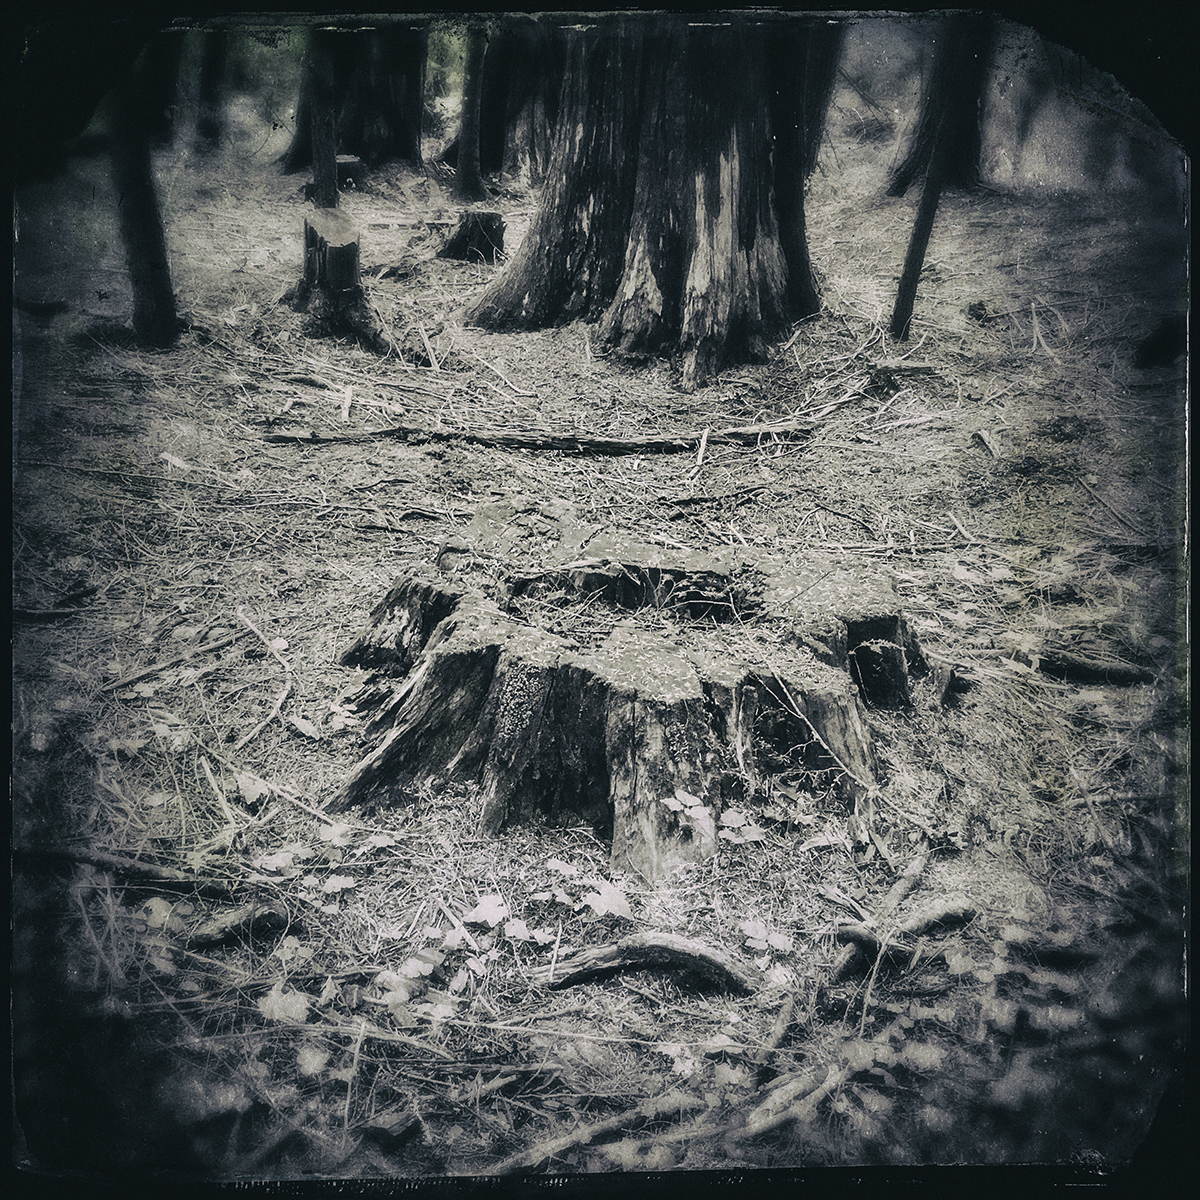 Forest of Lost Trees 14 72dpi.jpg